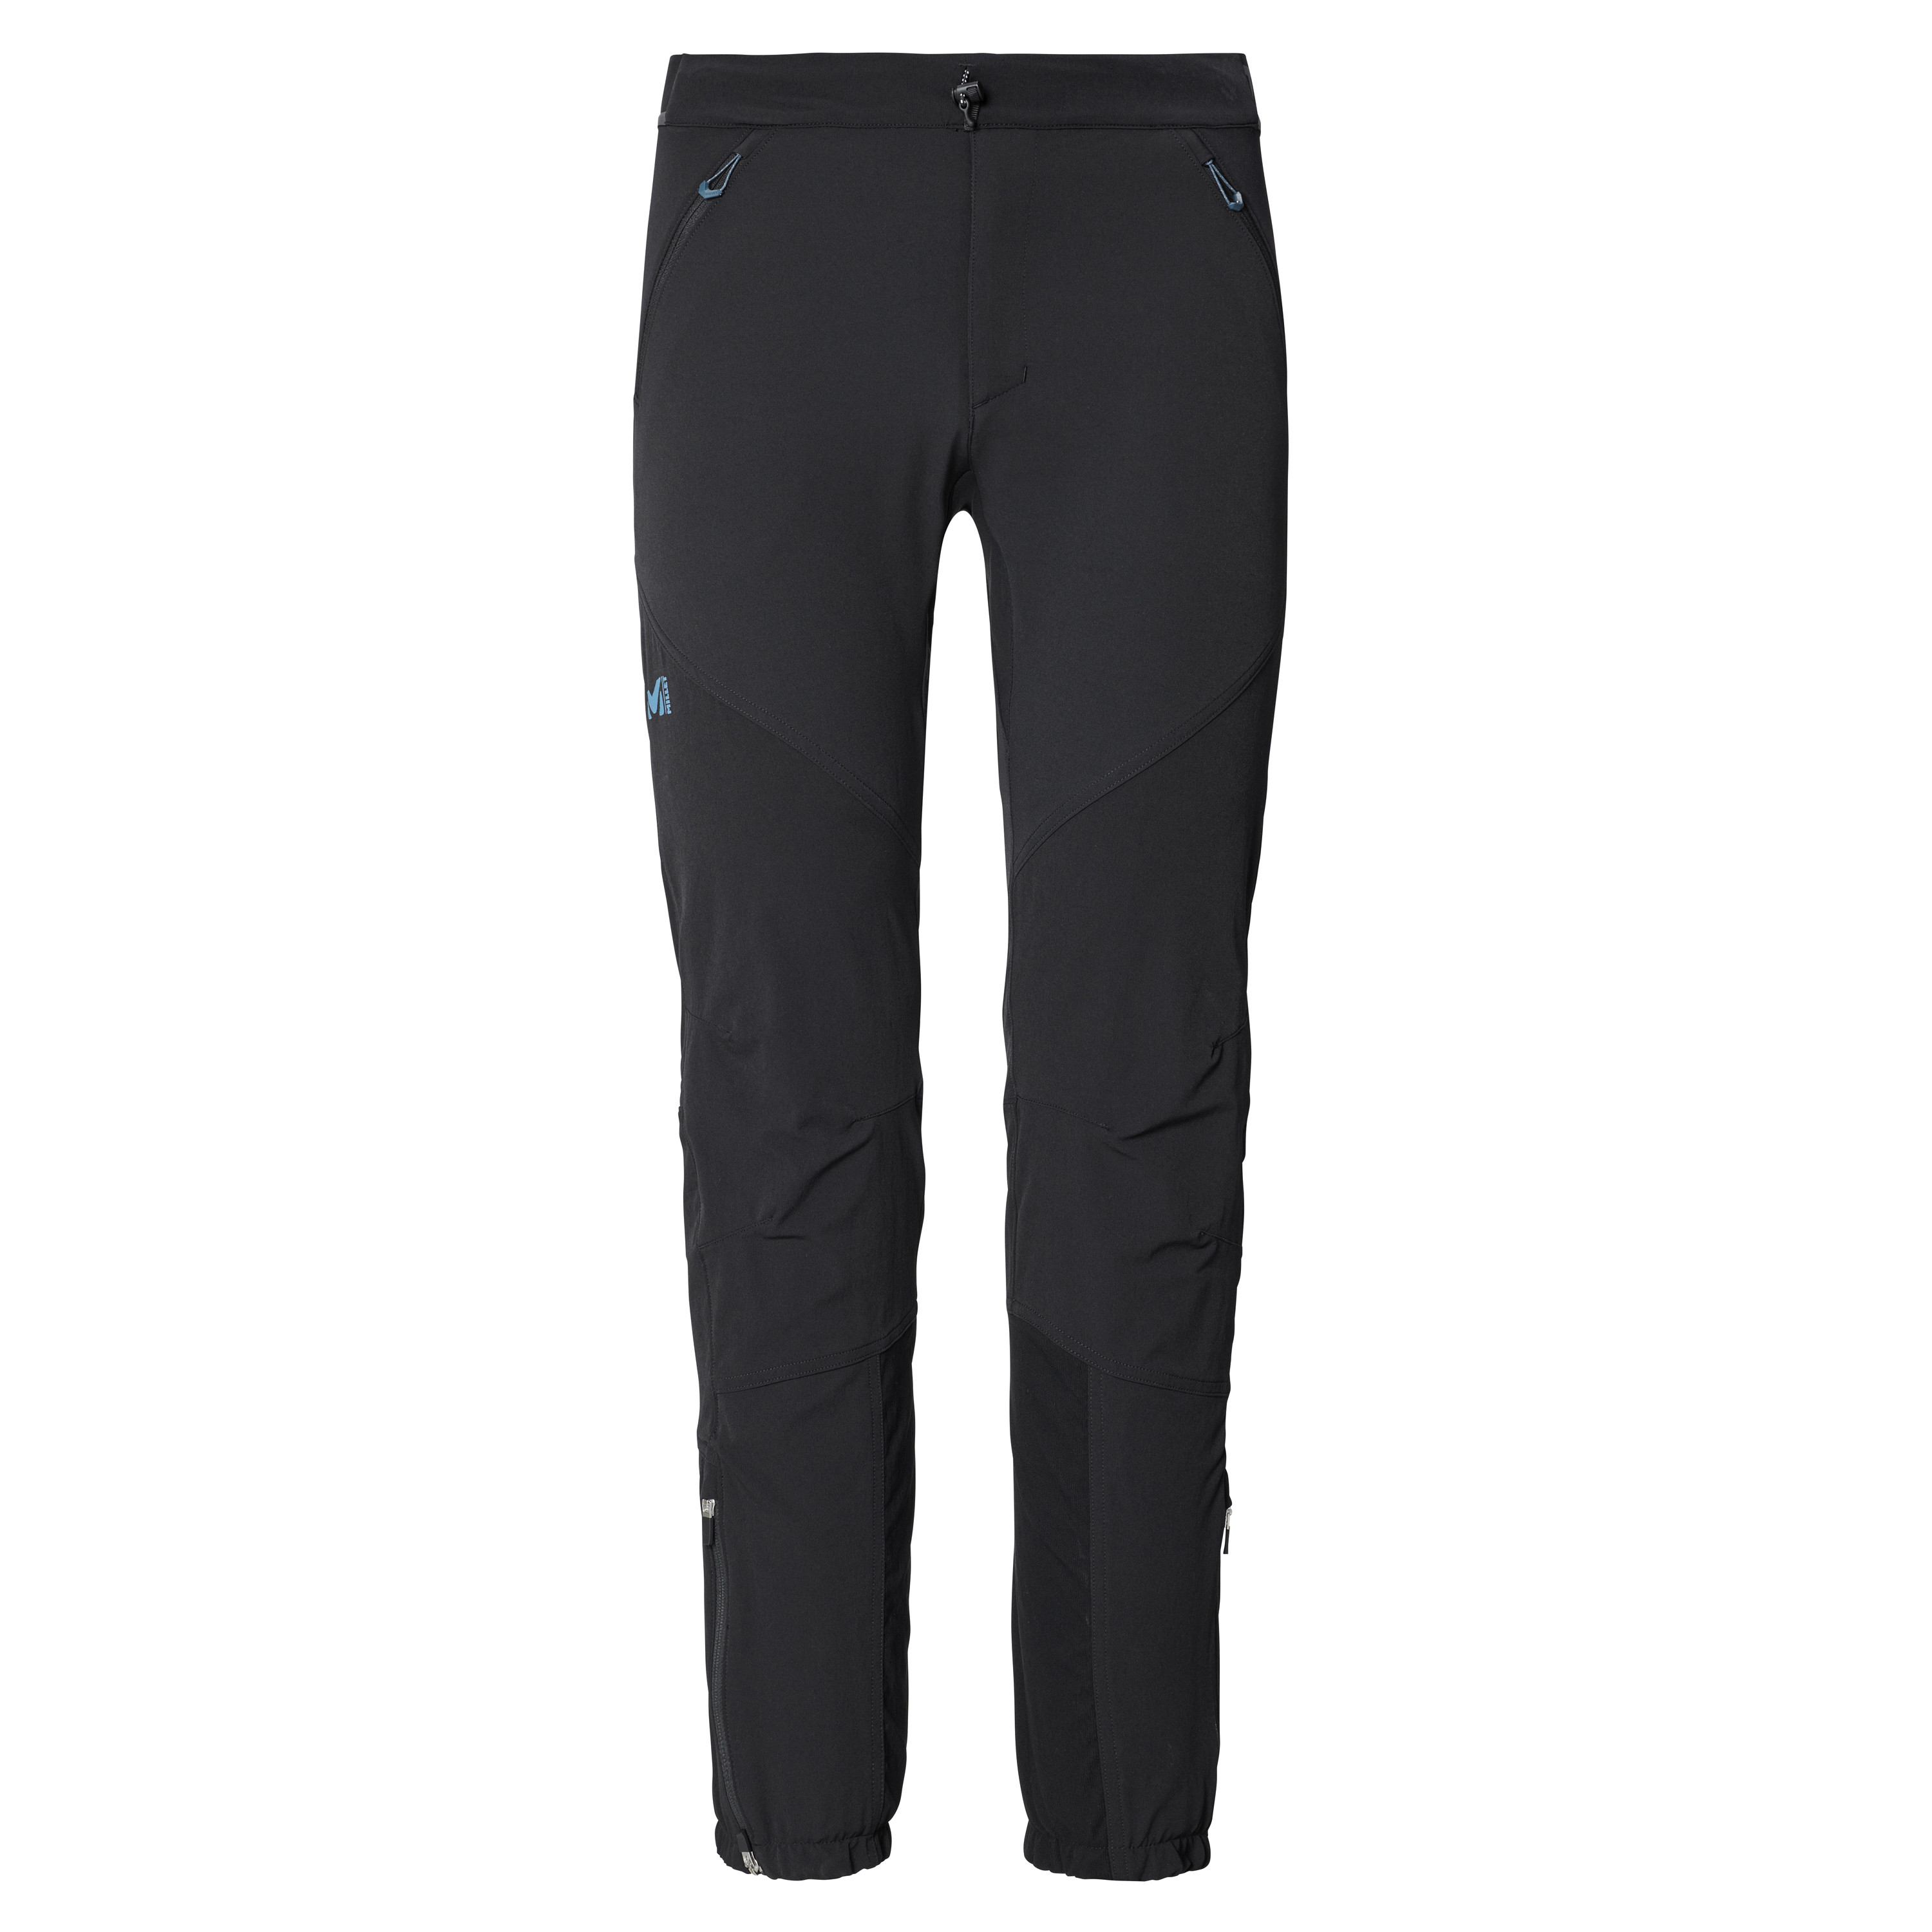 EXTREME TOURING FIT PT M